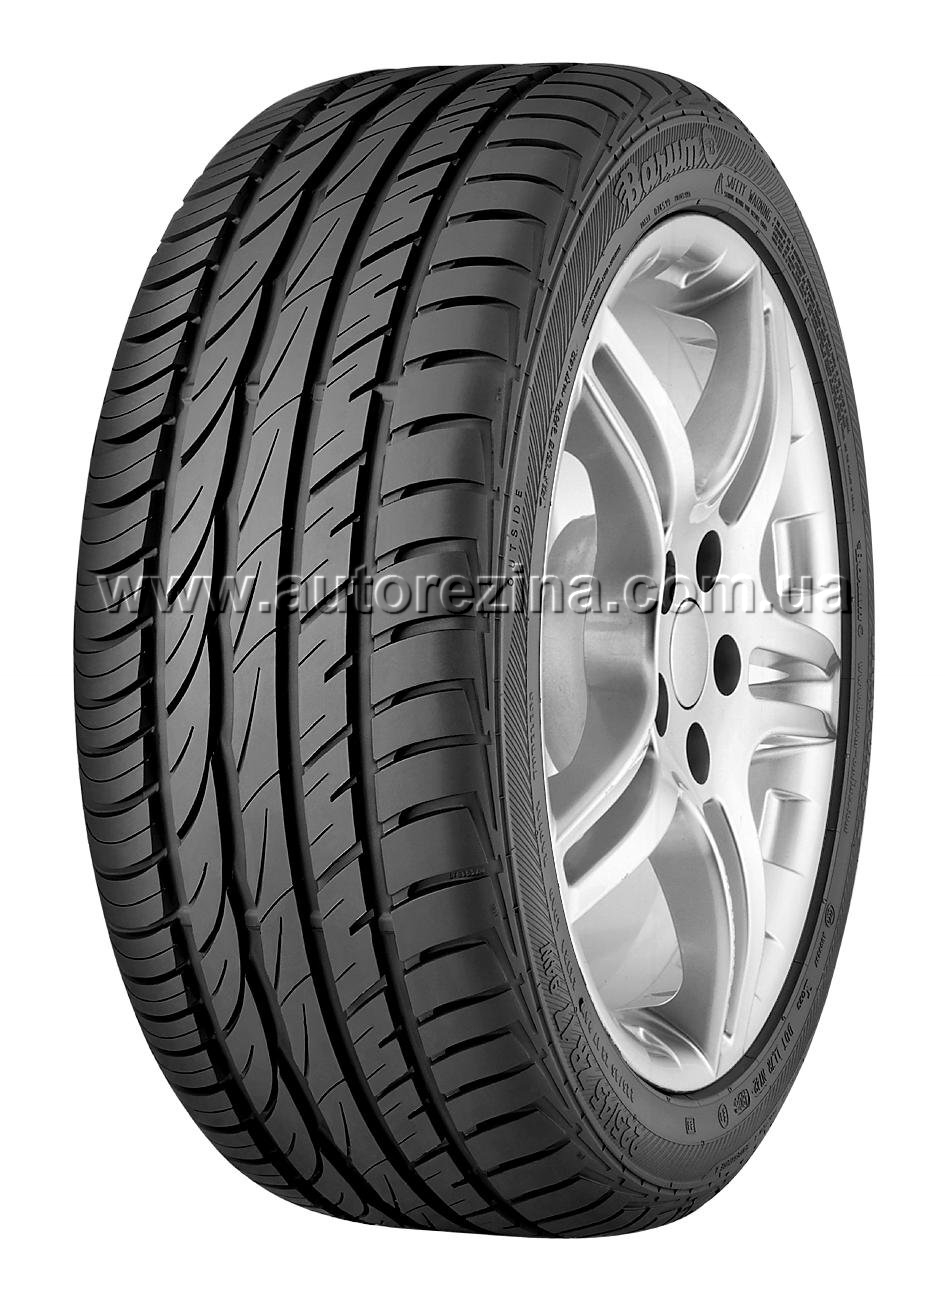 Barum Bravuris2 195/60 R15 88H летняя